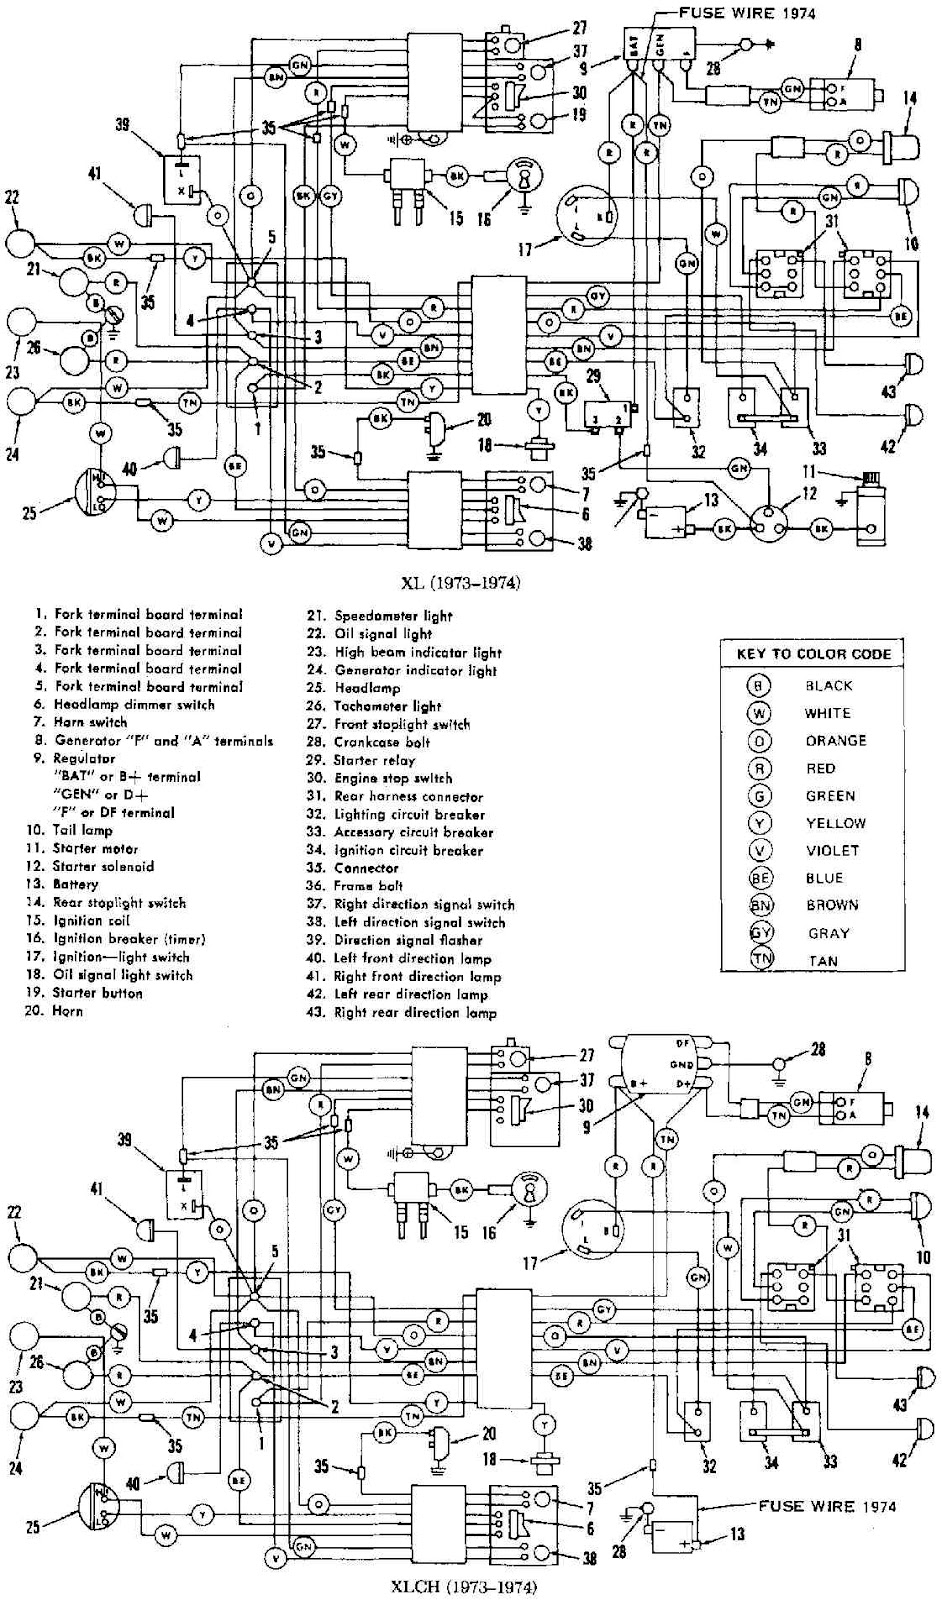 Harley Davidson Tachometer Wiring Diagram Dual Voice Coil Xl-xlch 1973-1974 Motorcycle Electrical | All About Diagrams